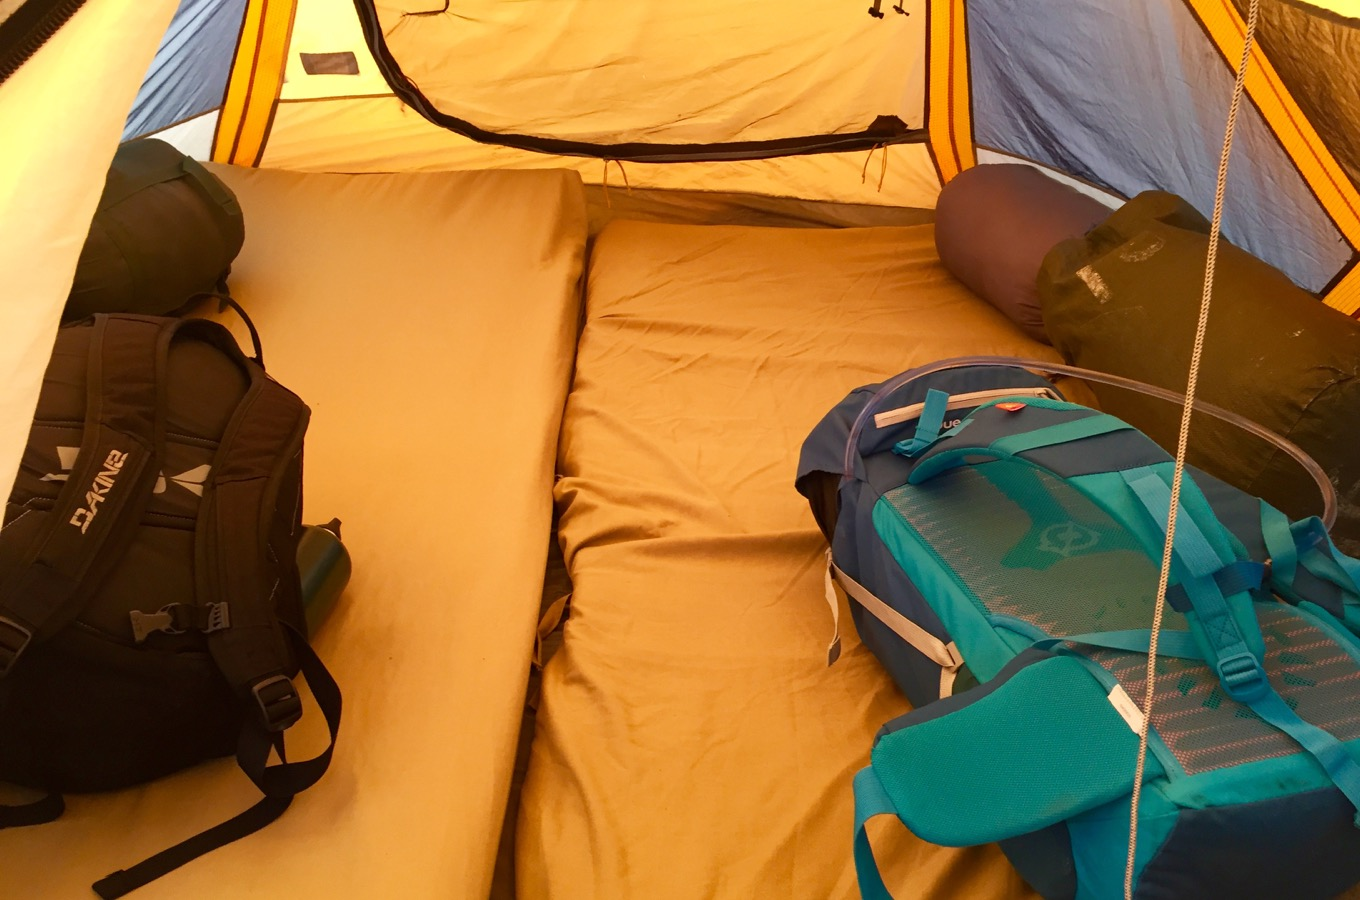 Tent with matrasses and backpacks